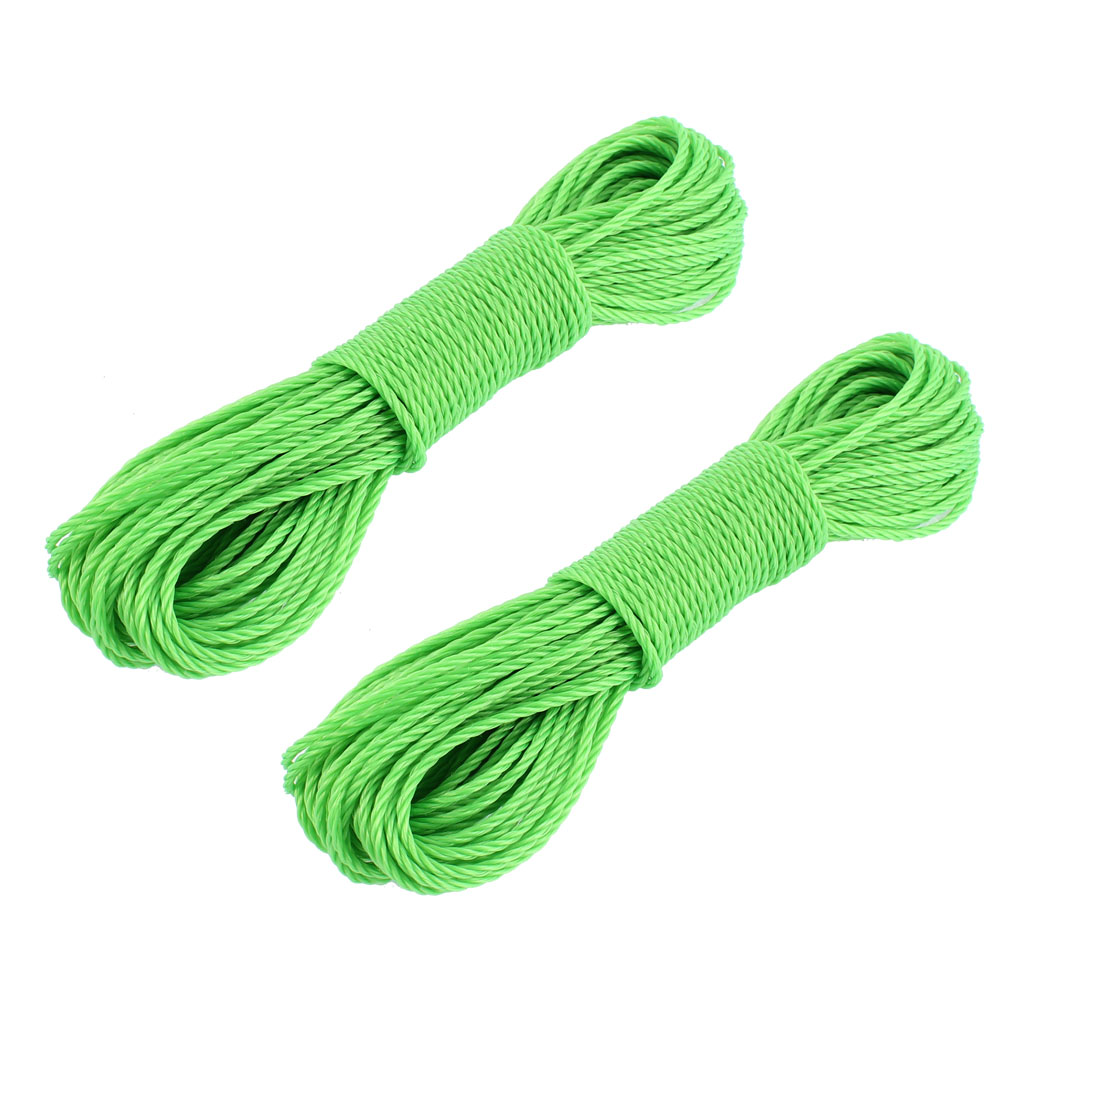 Unique Bargains Outdoor Travel Business Laundry Washing Clothes Line Rope Clothesline Green 2pcs